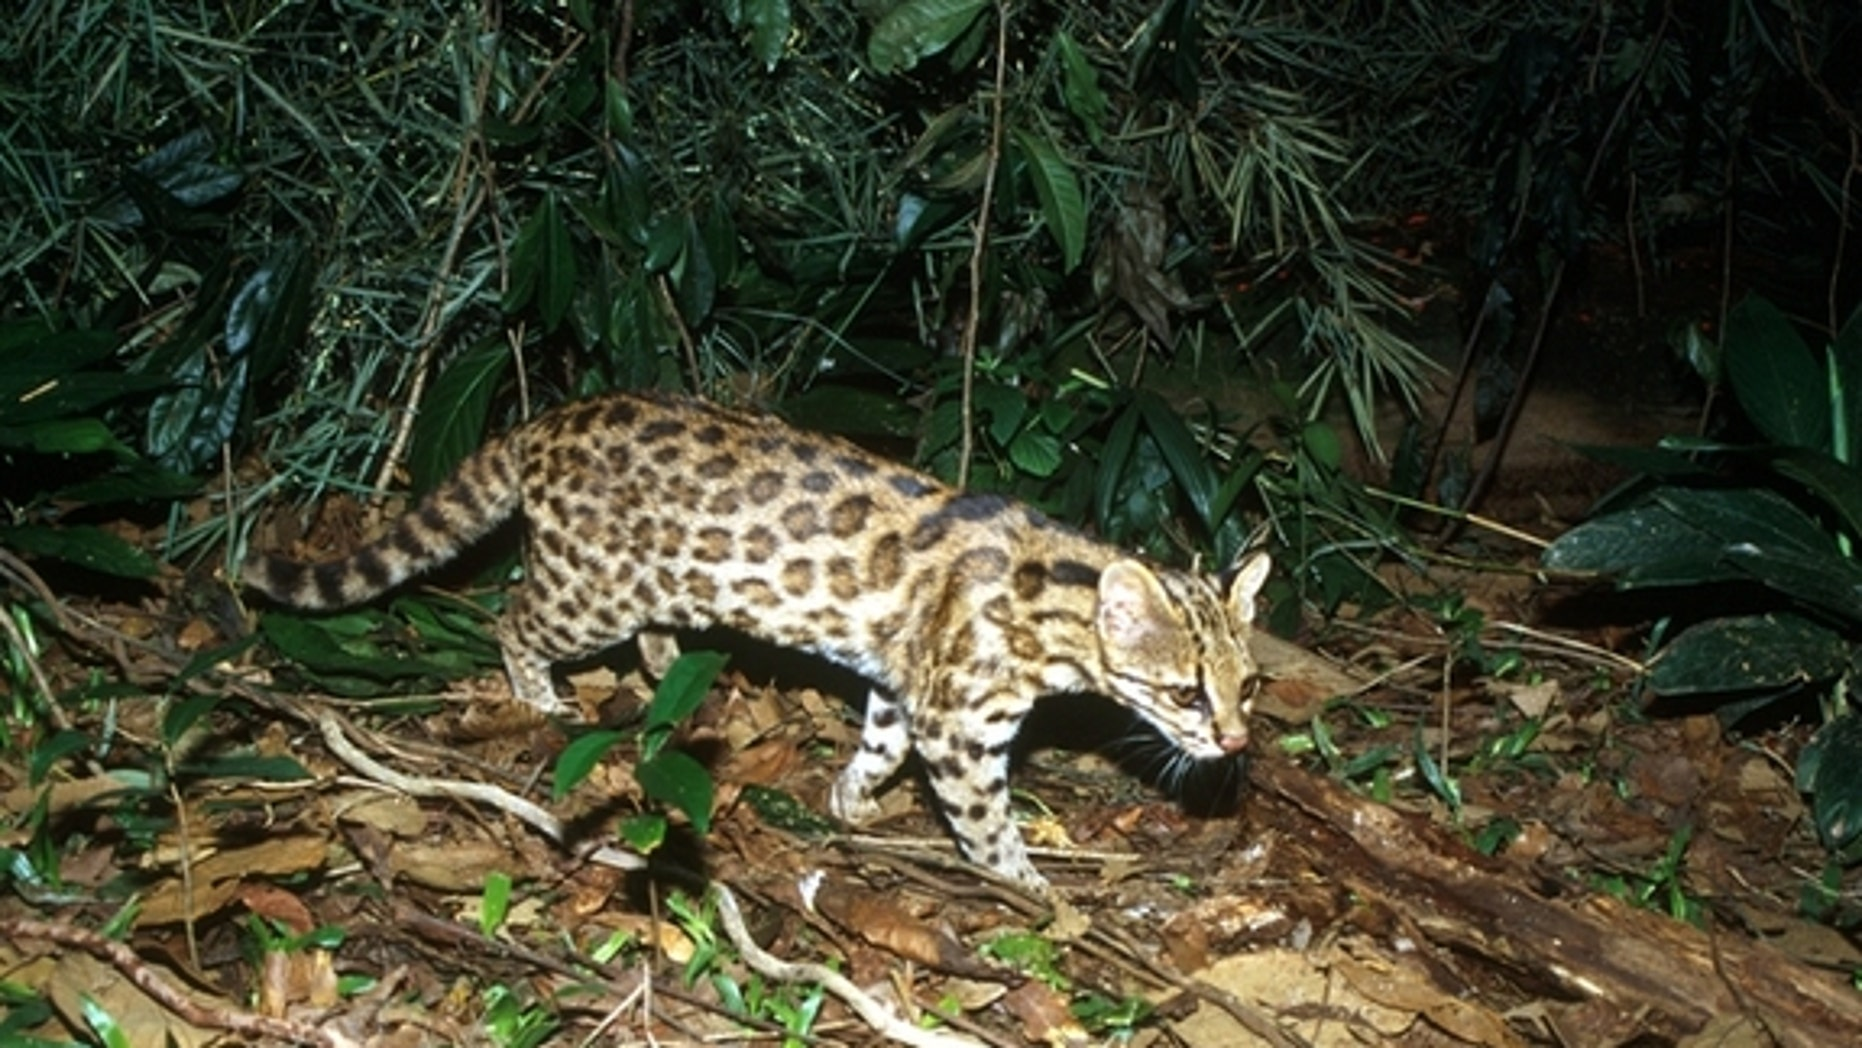 An oncilla (<em>Leopardus guttulus</em>) found in southern Brazil. They are one of the smallest cats in South America, maxing out at 3 kilograms (about 6.5 lbs.).